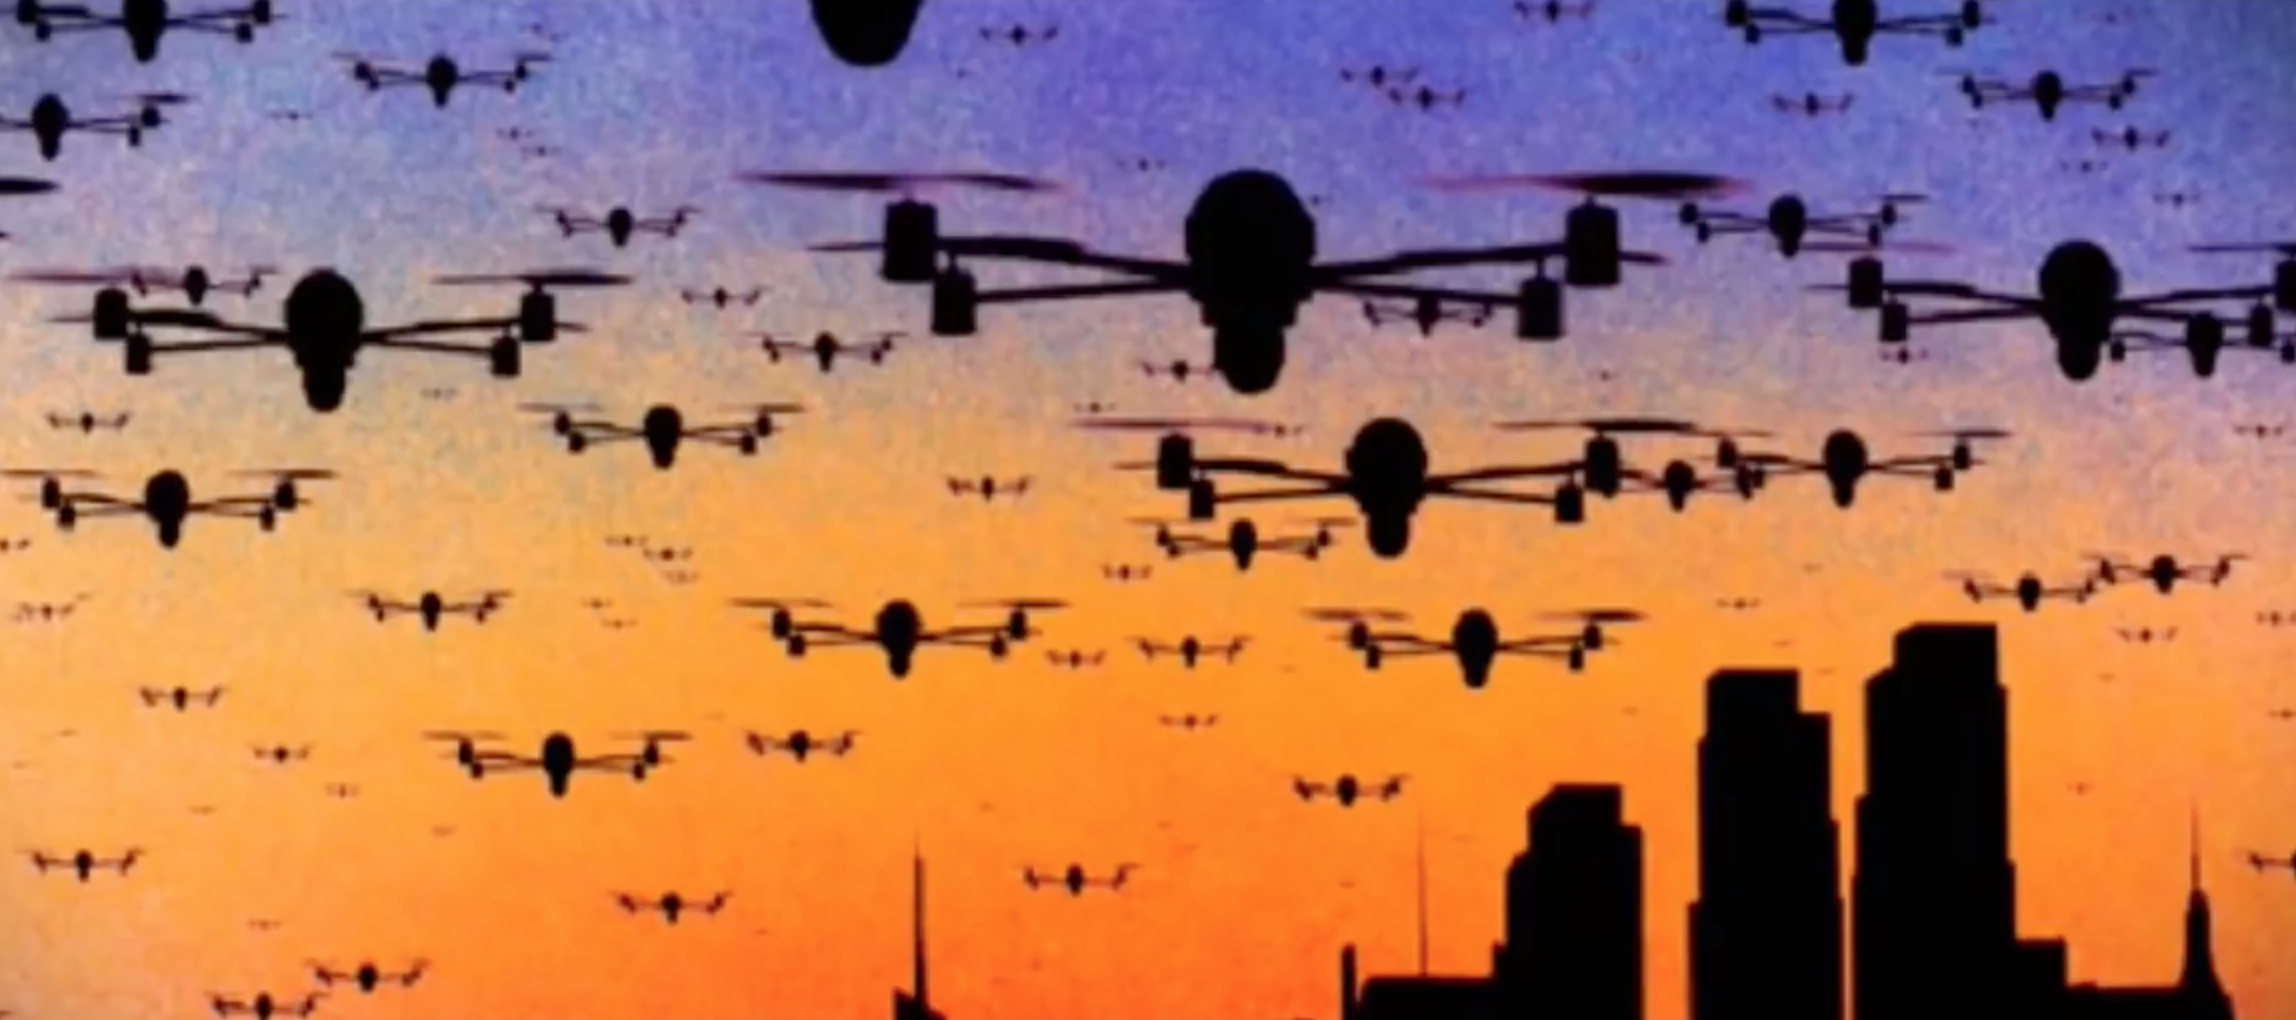 HE ERA OF THE DRONE SWARM IS COMING